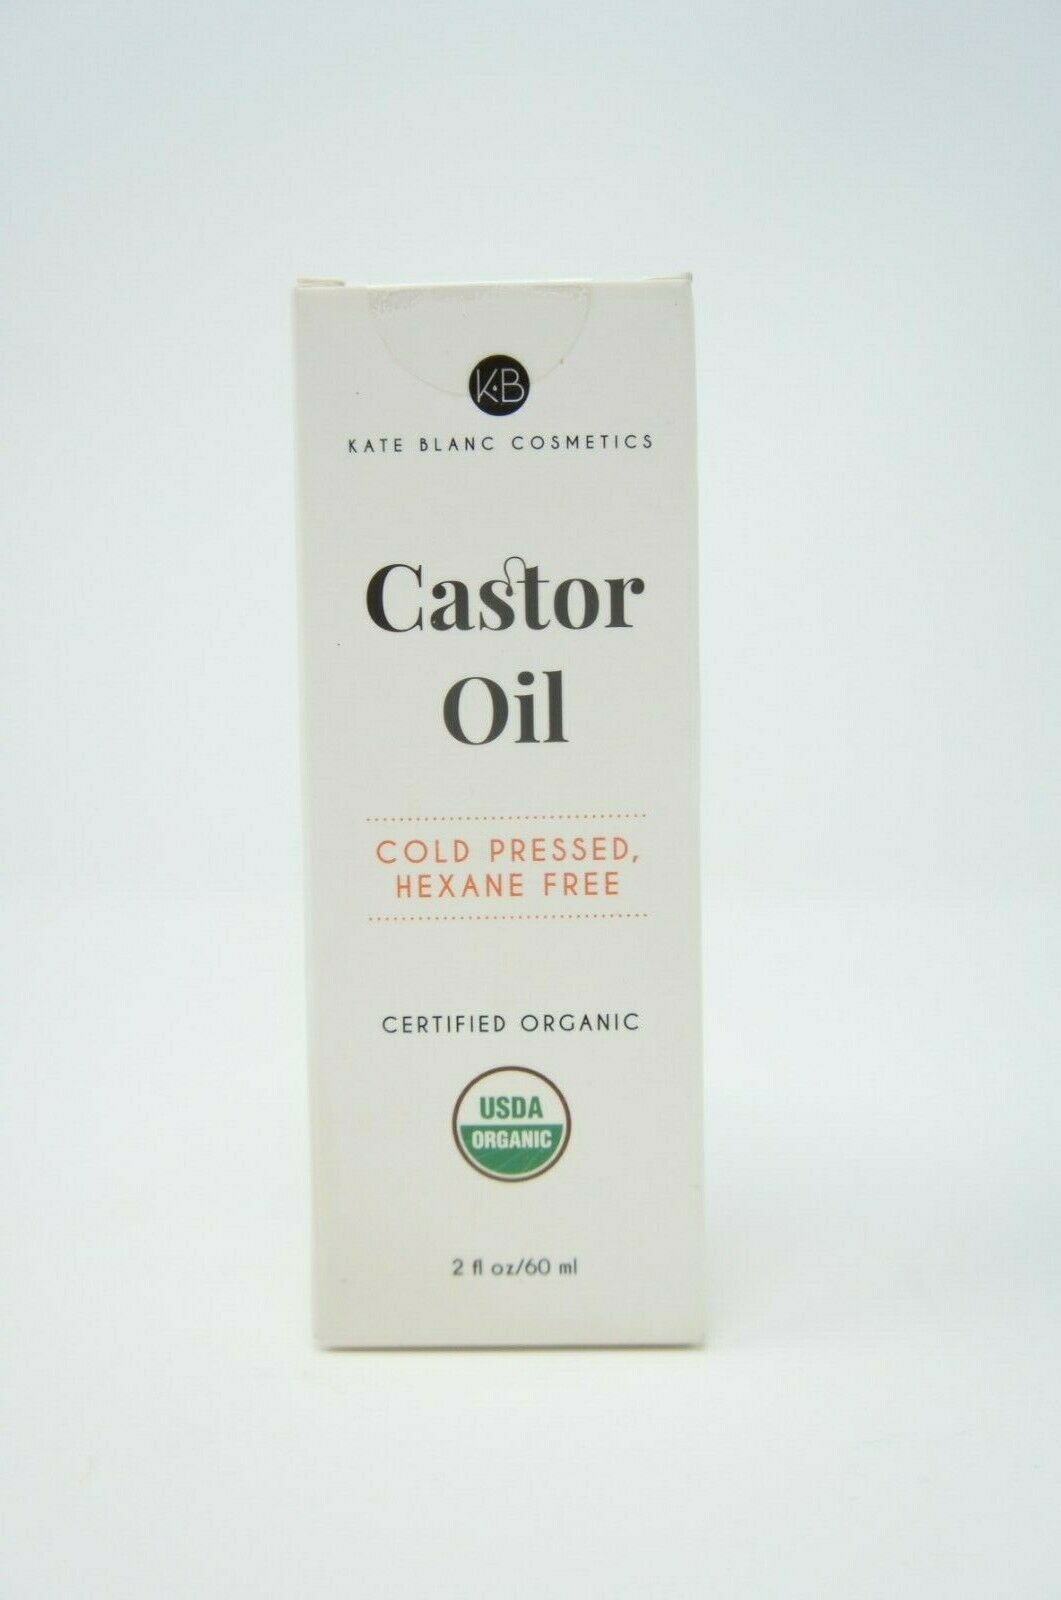 Castor Oil 2oz USDA Certified Organic 100% Pure Cold Pressed Hexane Free